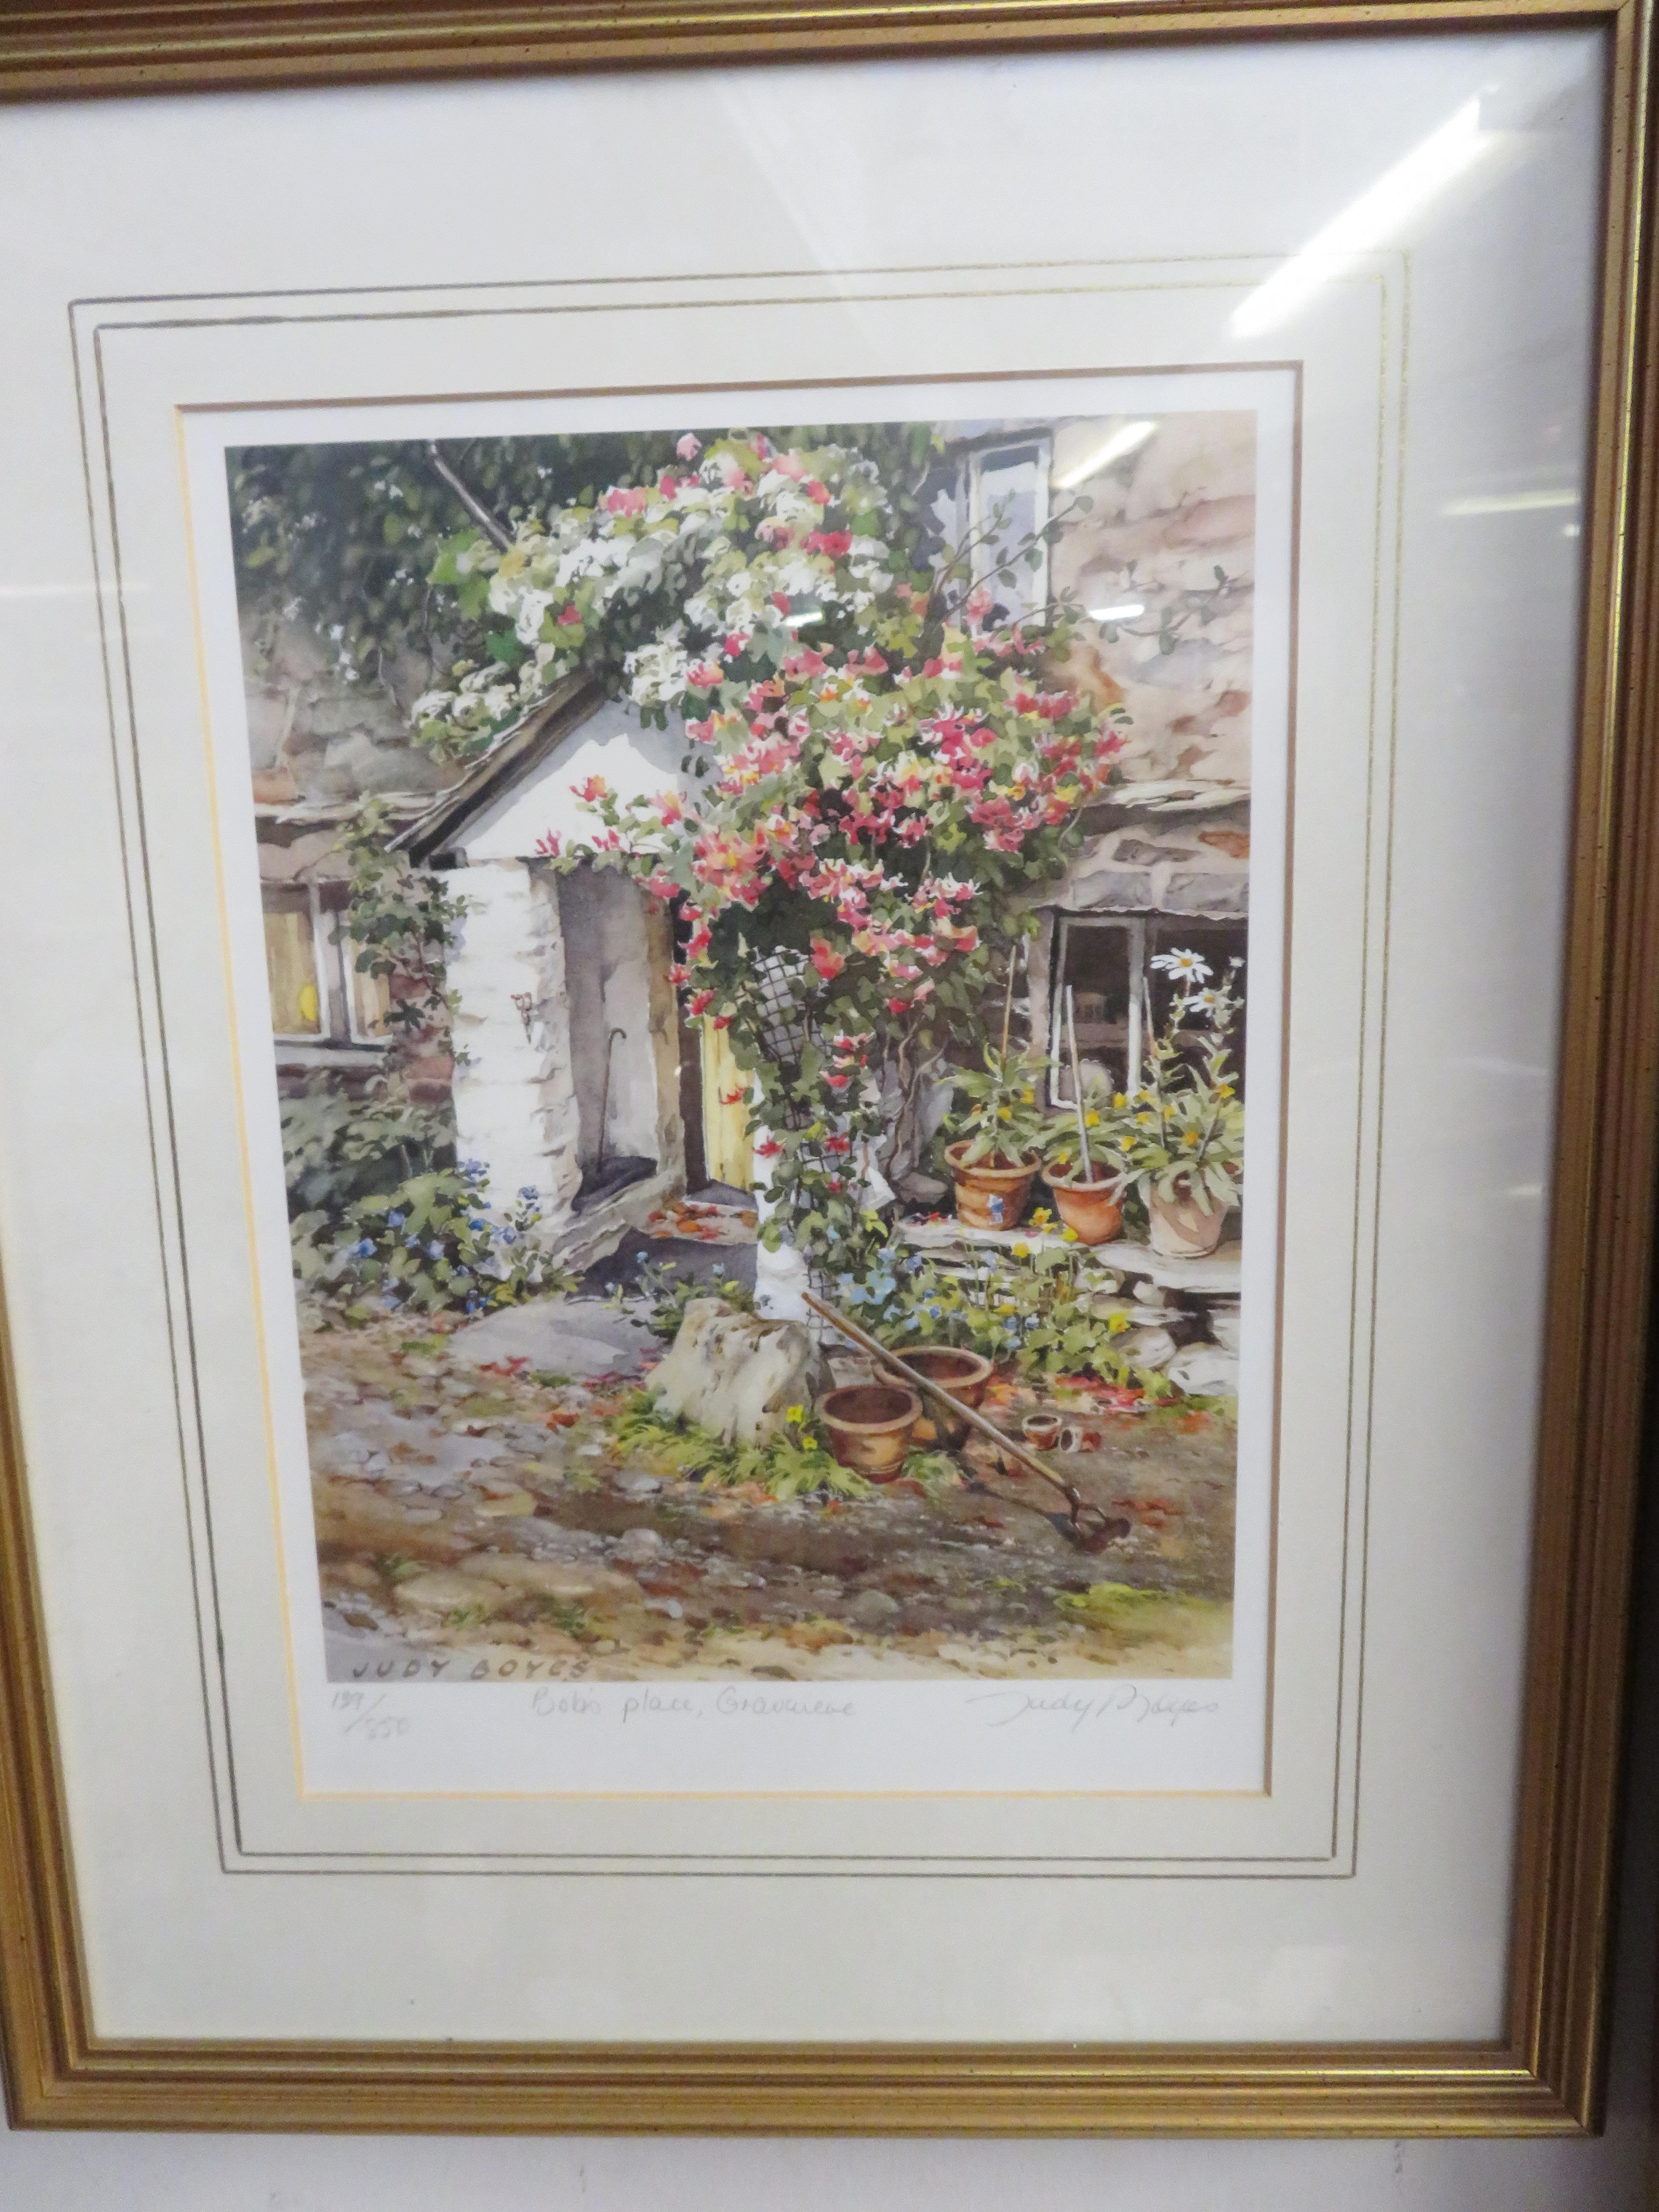 Lot 29 - Limited edition signed print by Judy Boyes ,Titled